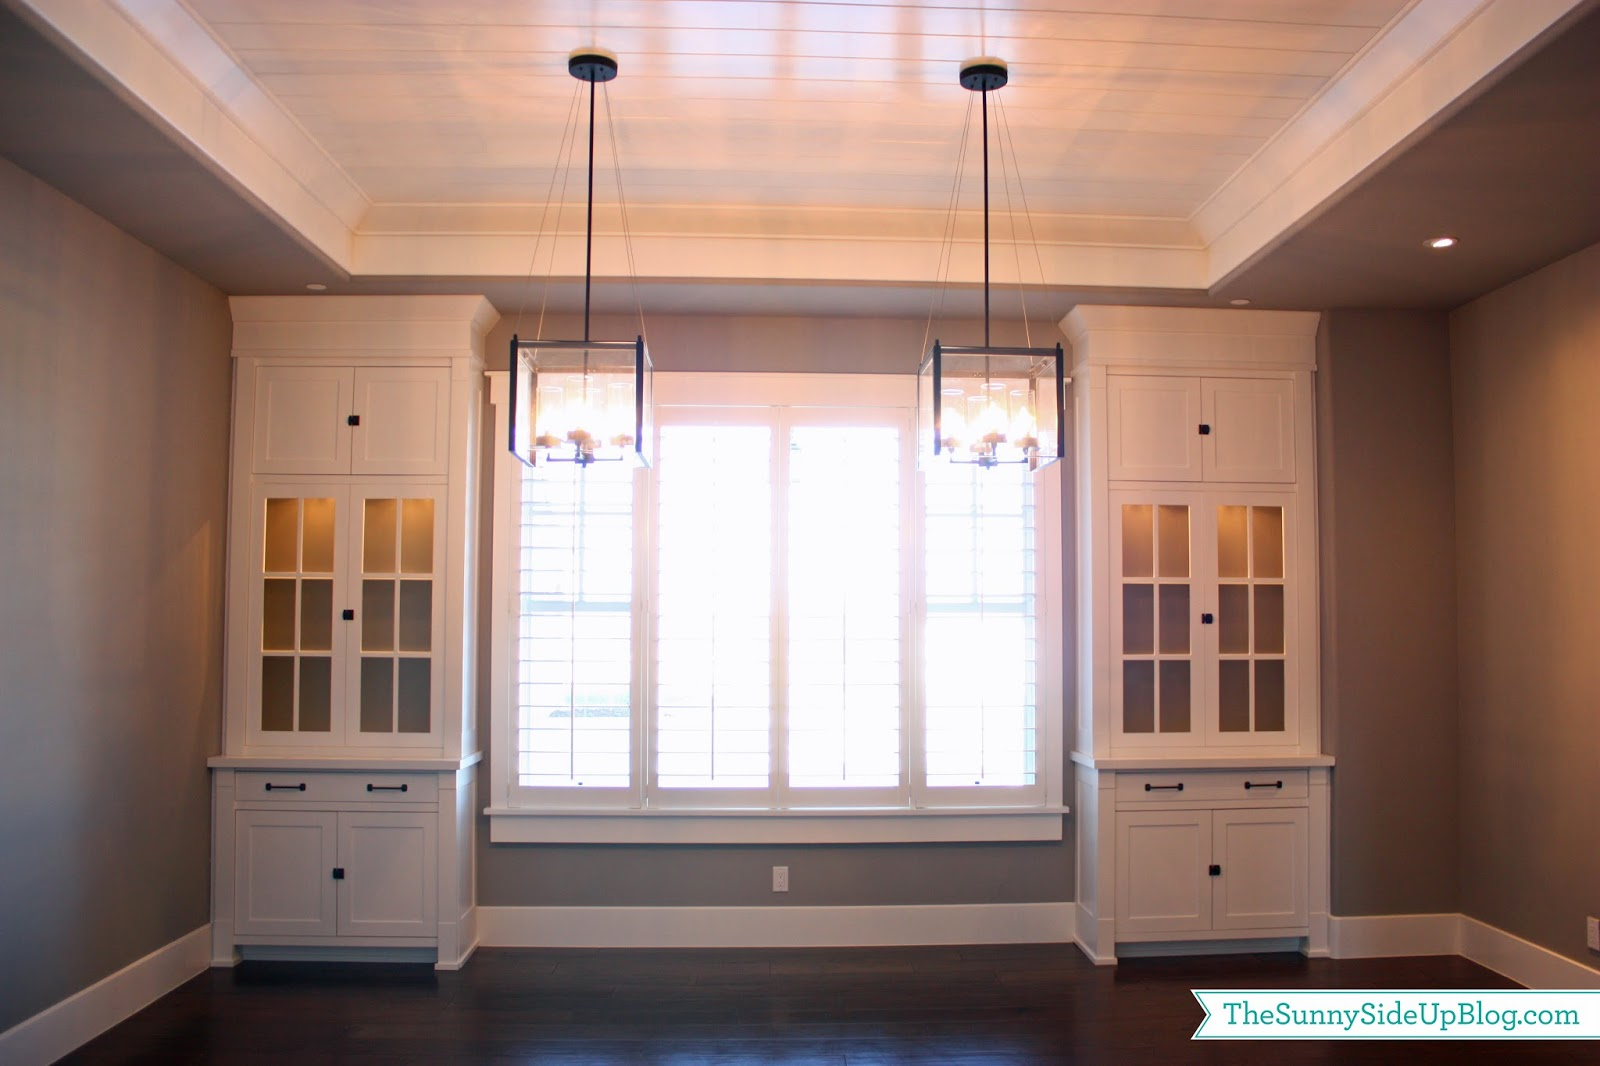 formal dining room designs. Let S Talk Decor  Finally A Few Days Ago I Shared Our New Formal Dining Room With You All Nice Blank Slate Here Are A Details About The Formal Dining Room Plan The Sunny Side Up Blog